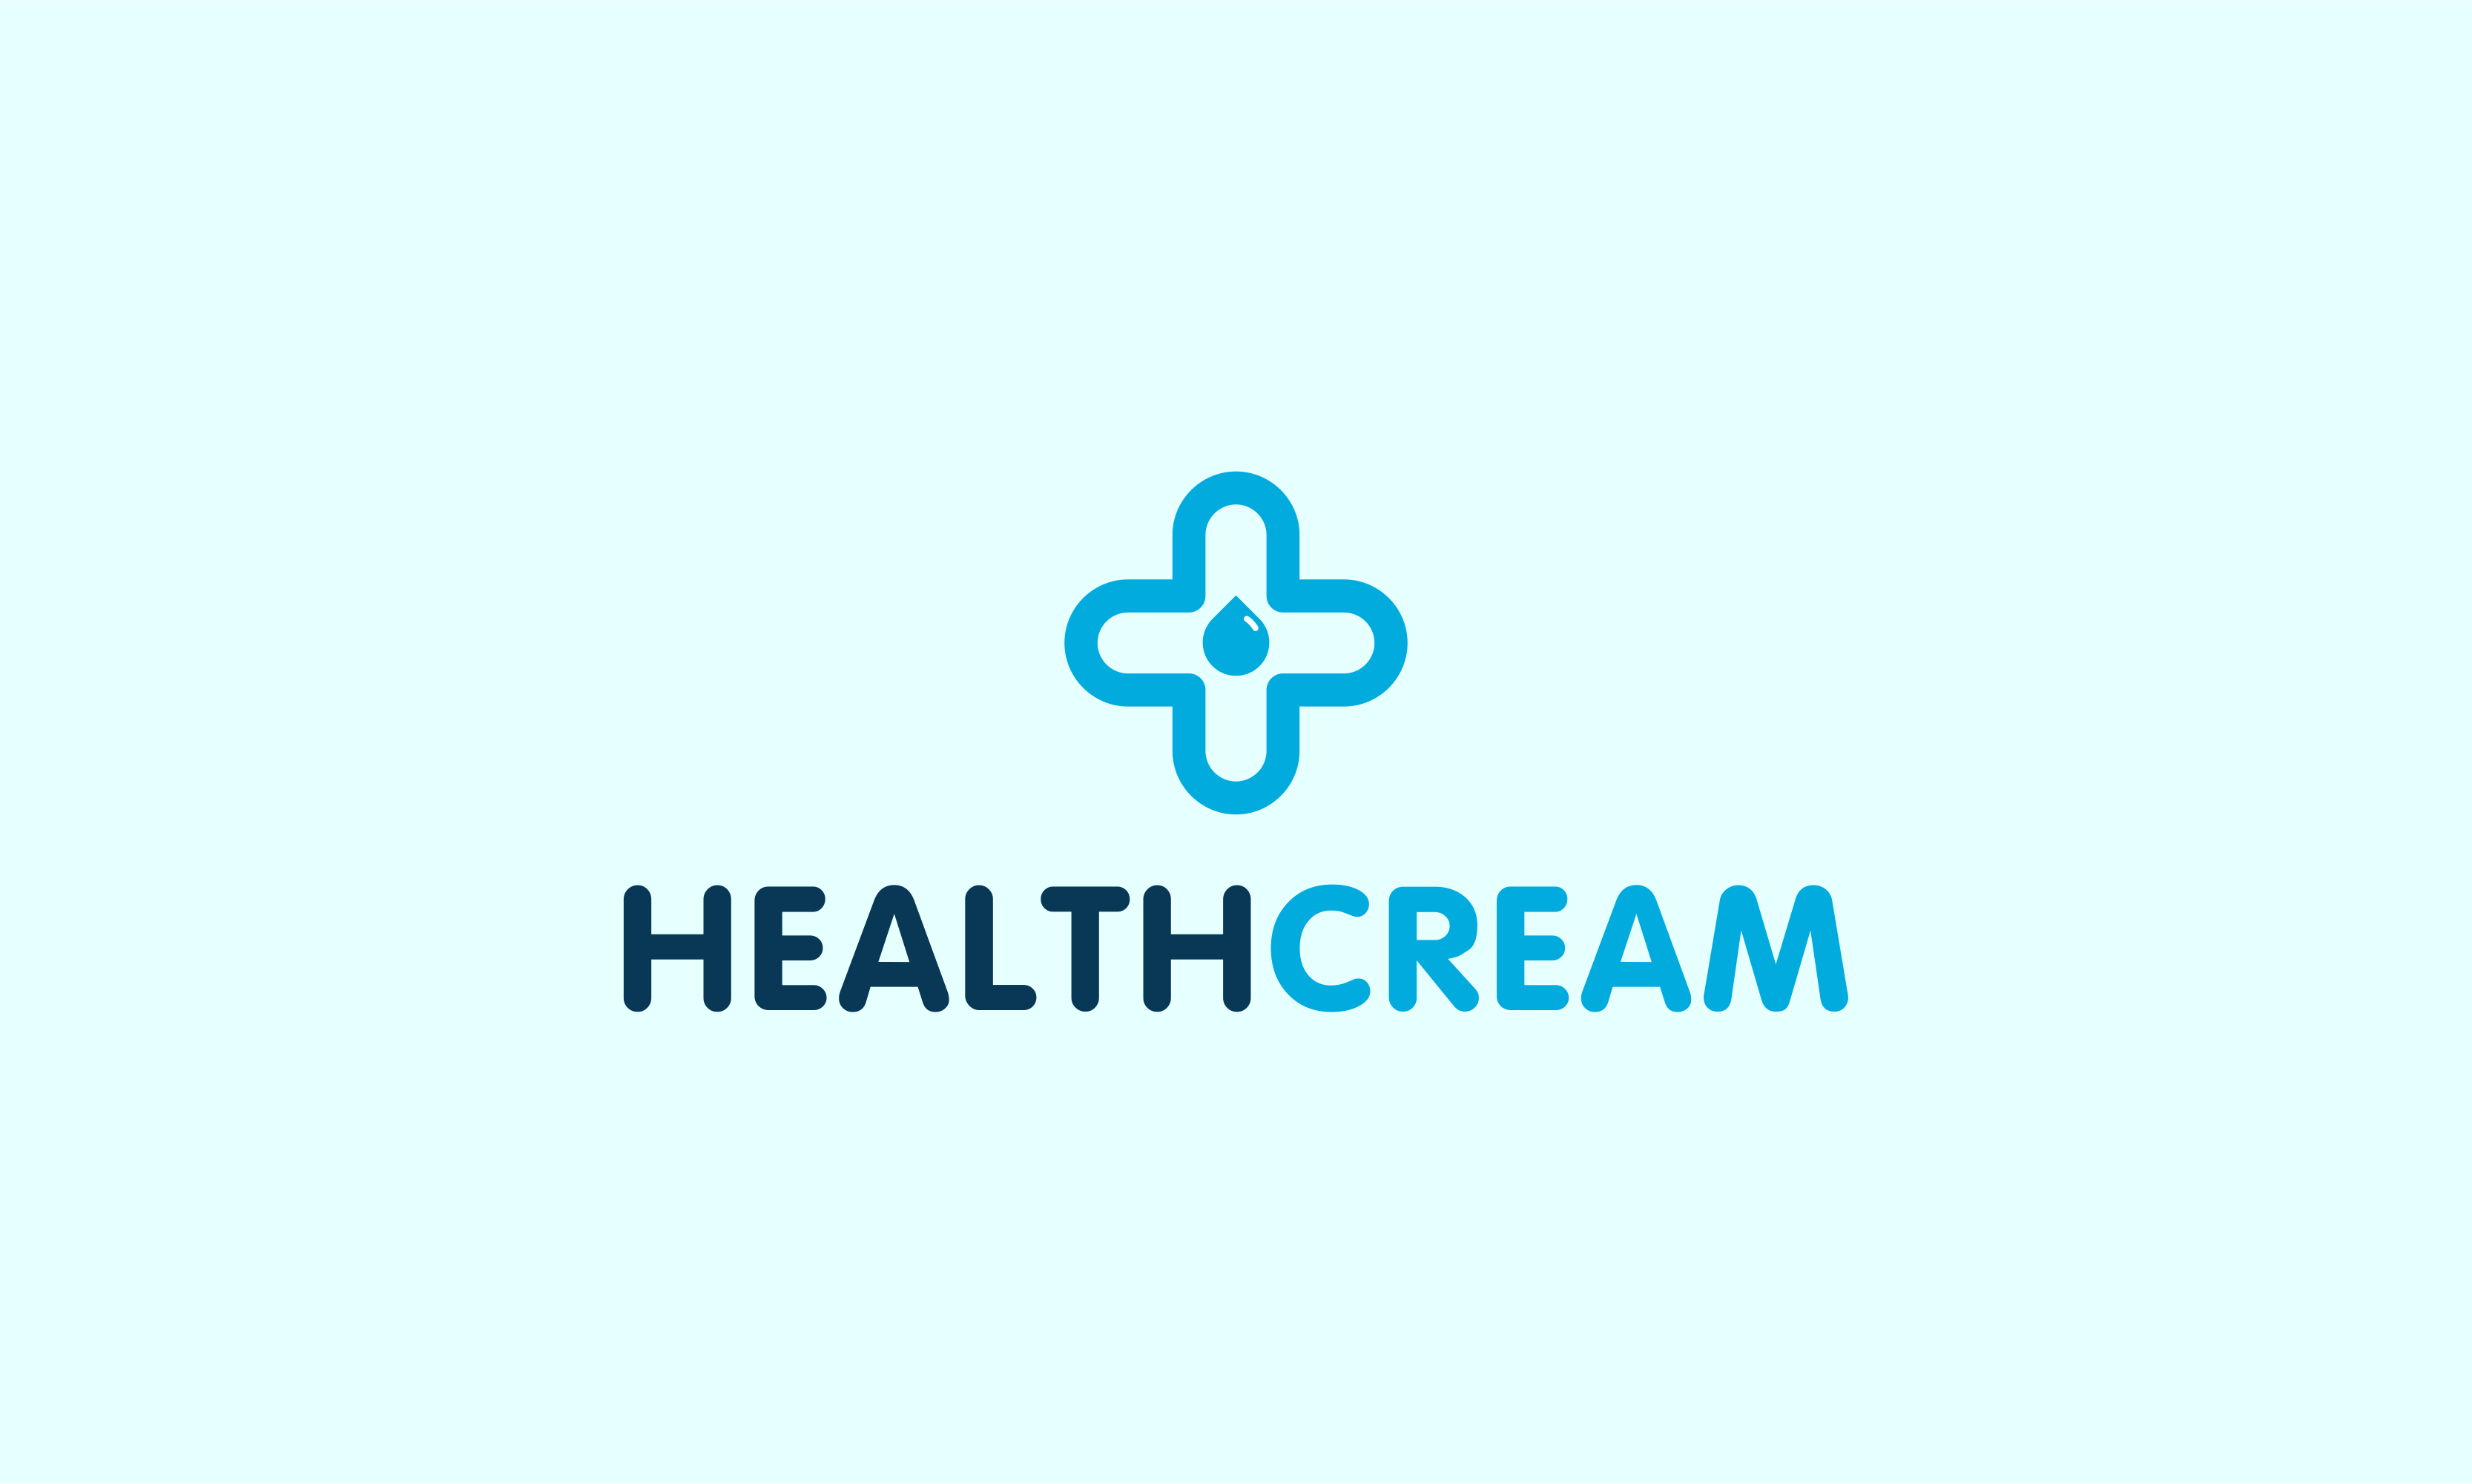 Healthcream